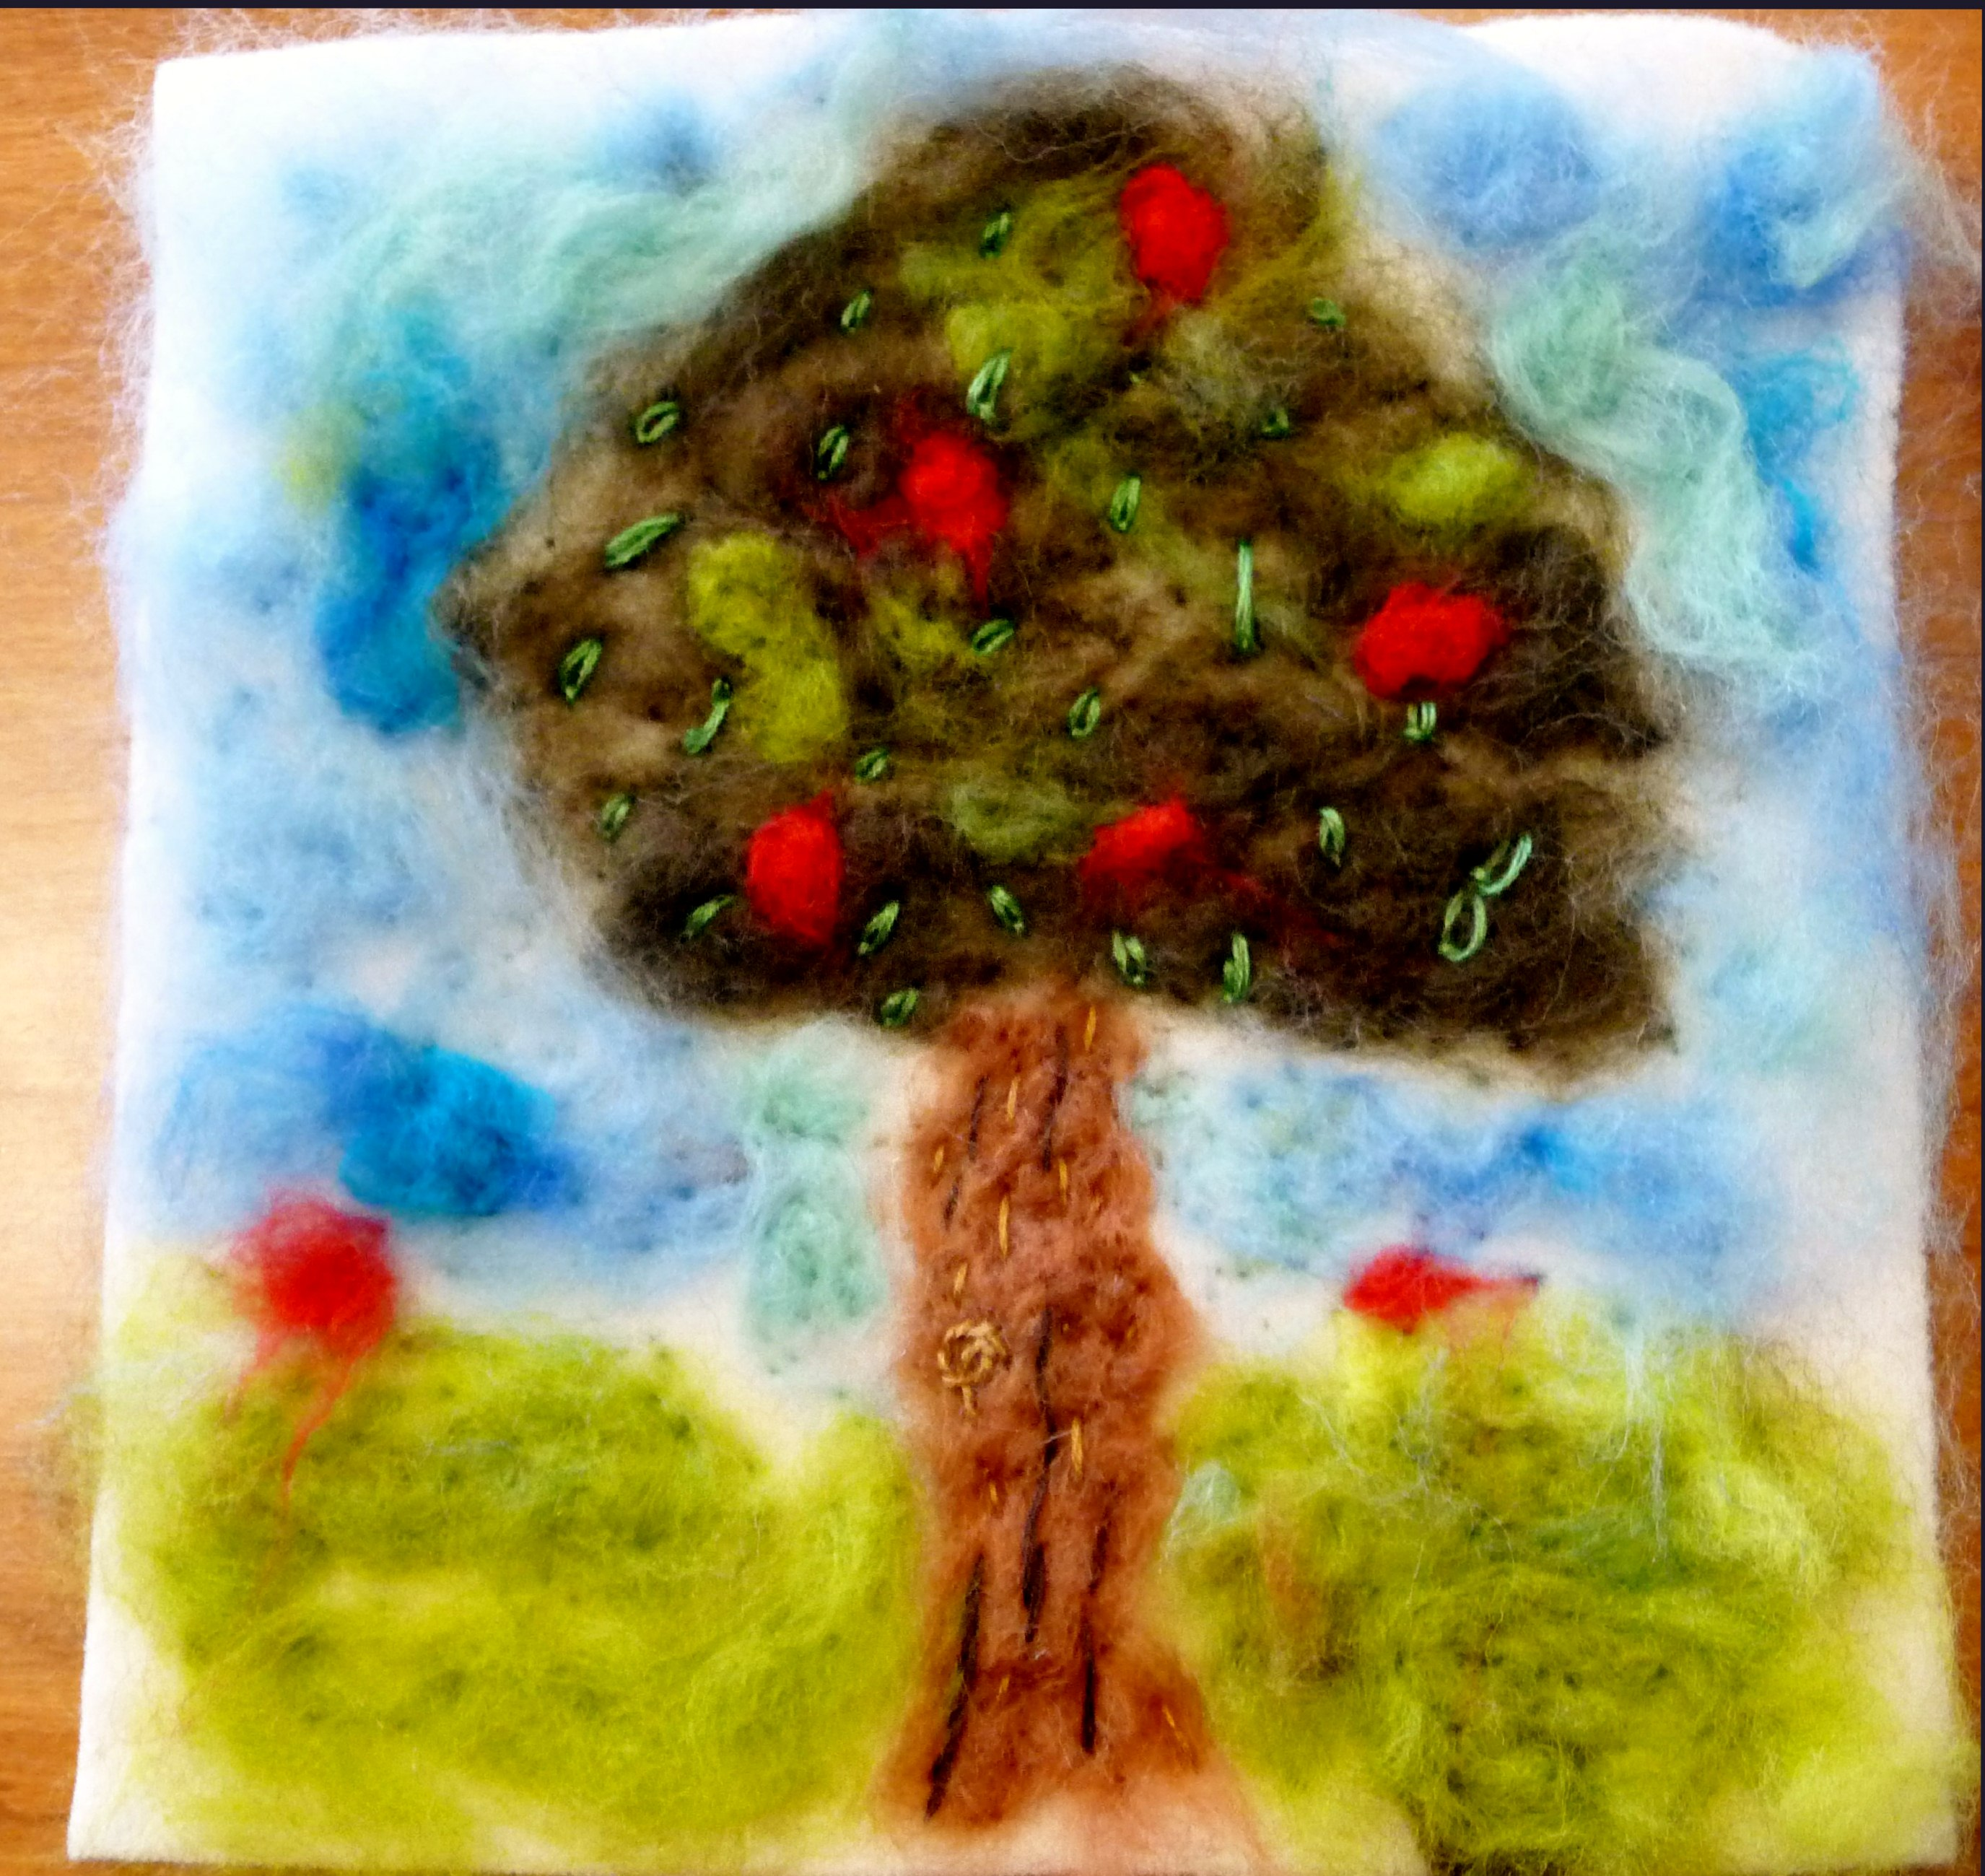 YE group May 2015. This is Fionn's completed needlefelted landscape